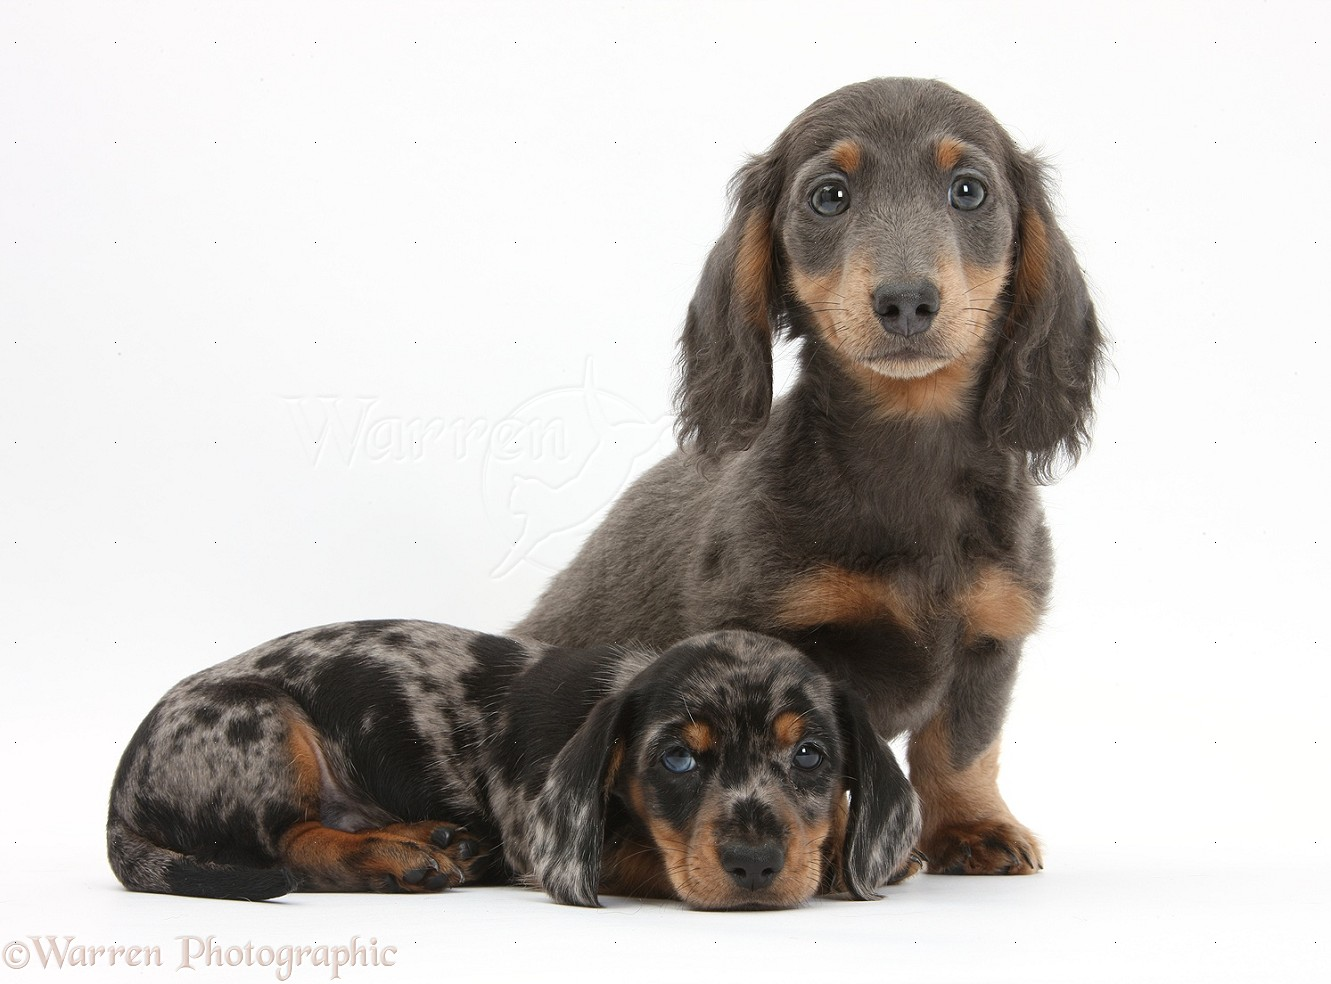 Dogs Blue And Tan And Tricolour Merle Dachshund Pups Photo Wp32376